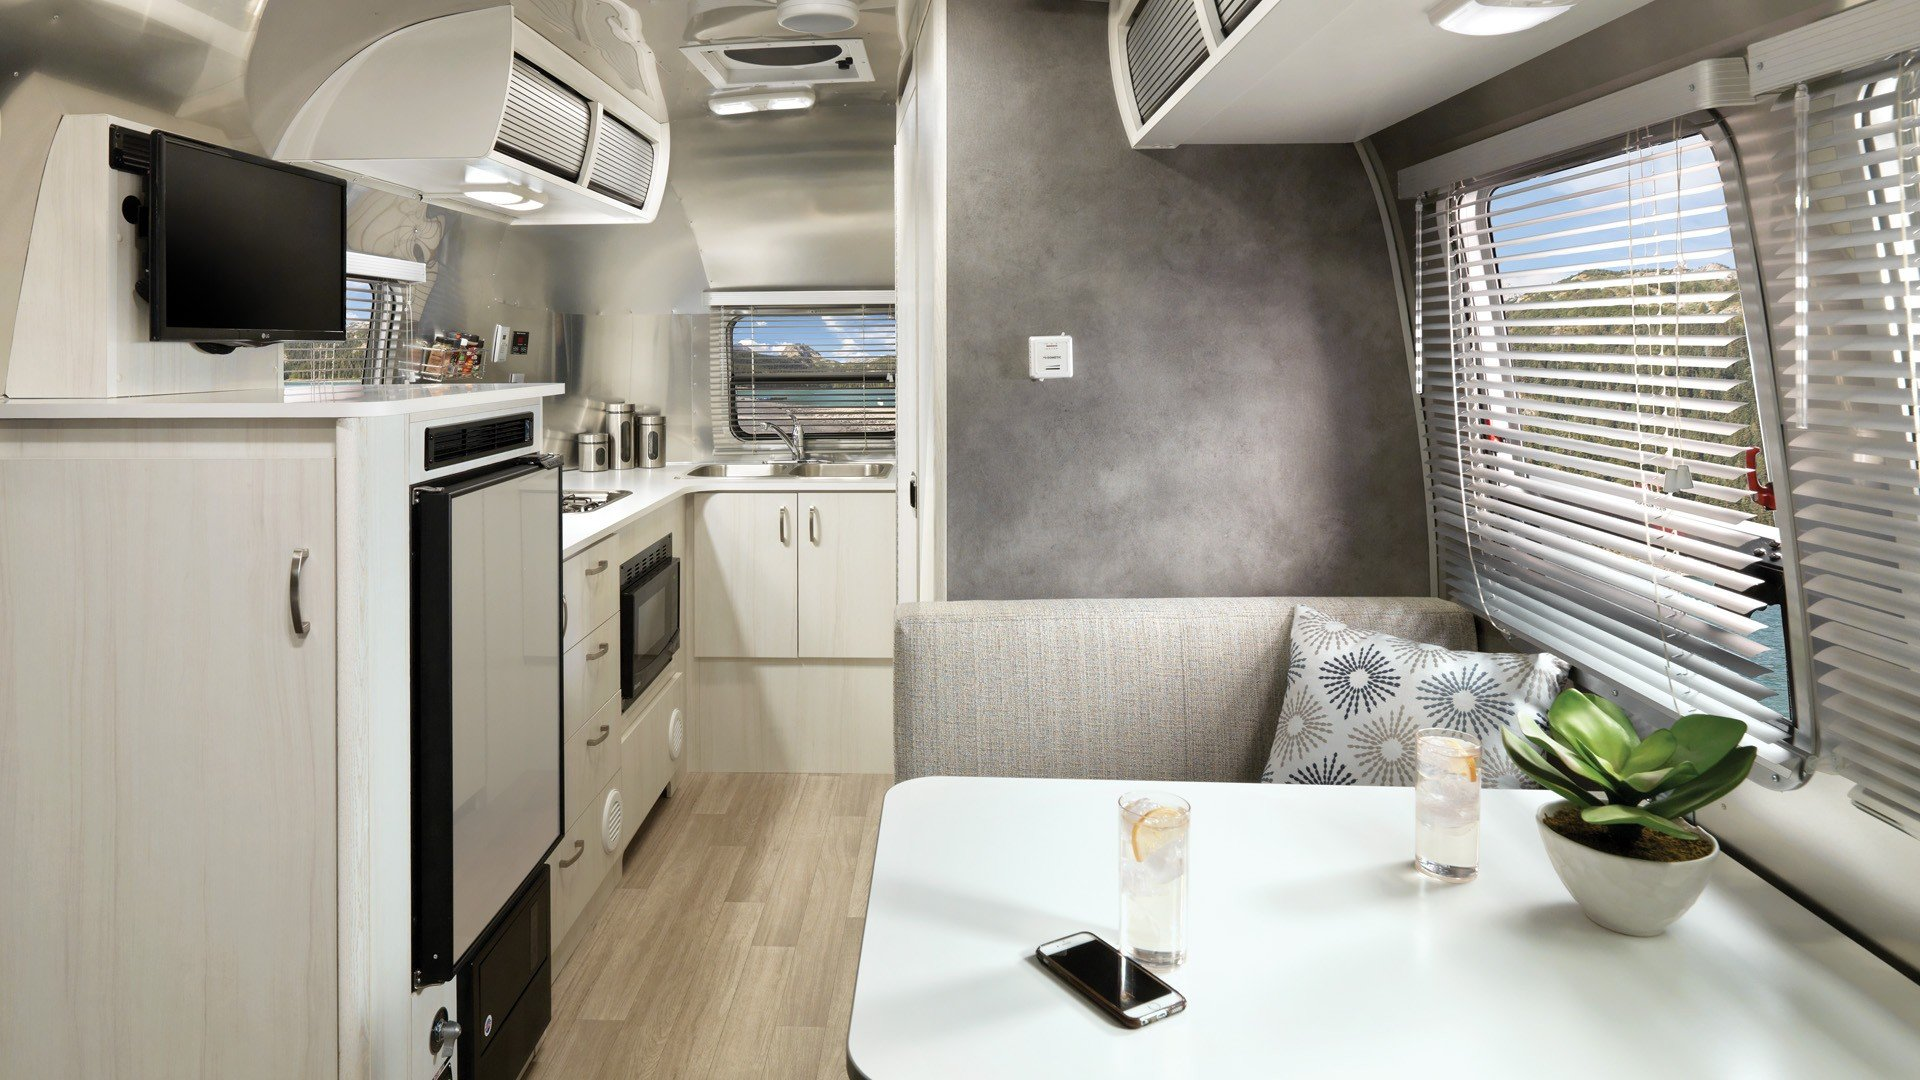 2020 Airstream Bambi Kitchen and Living